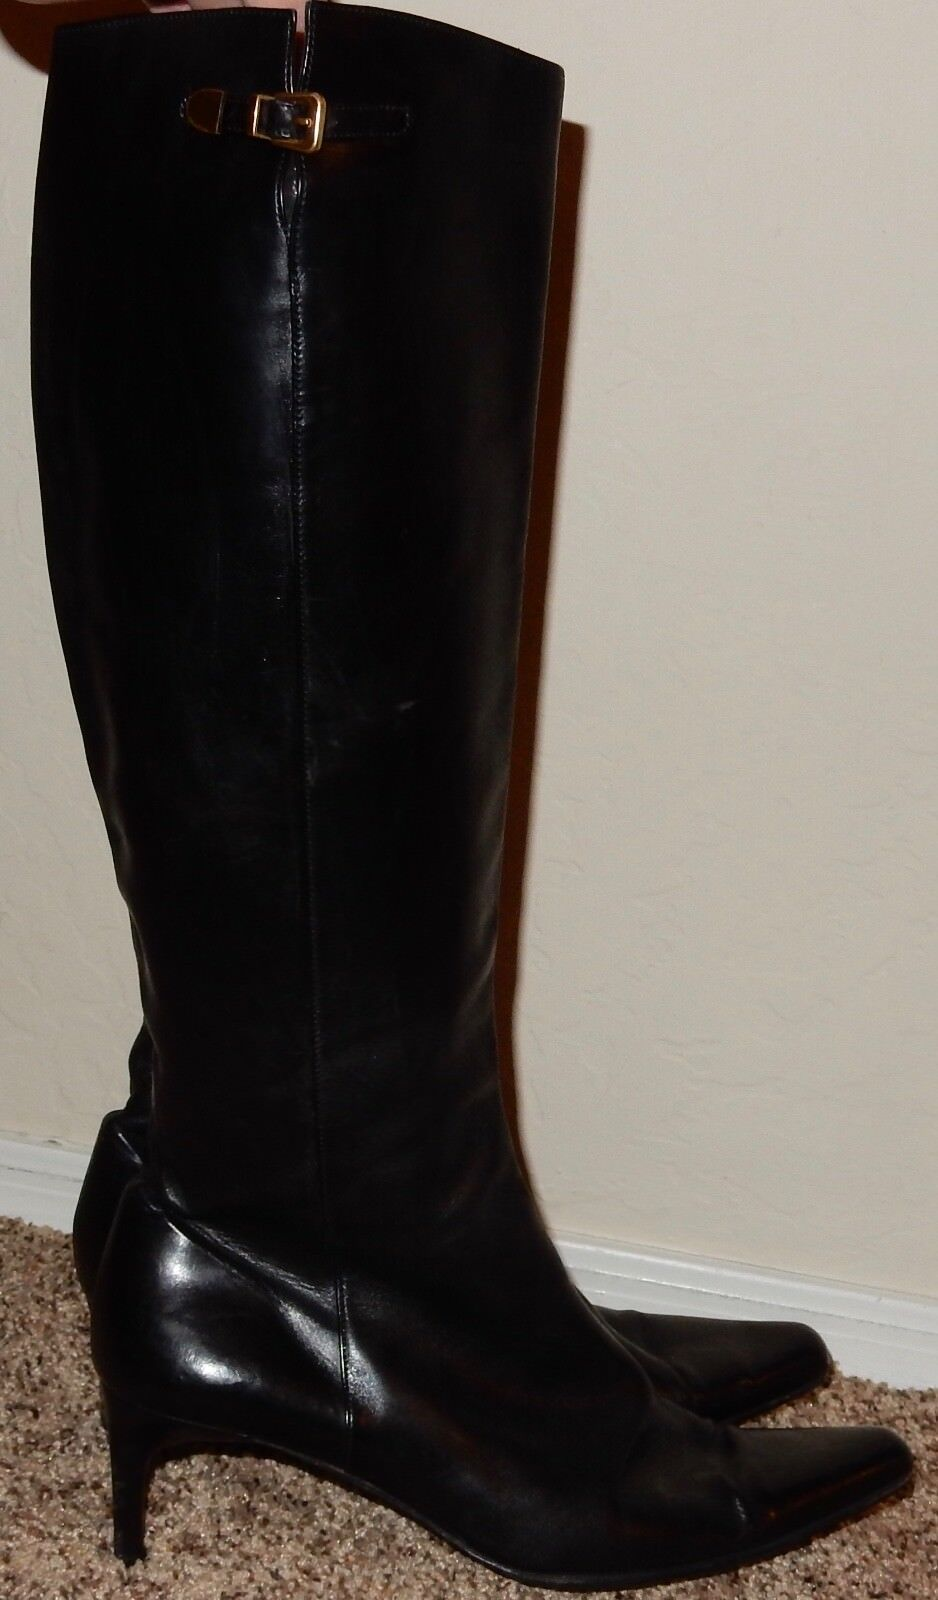 Ralph Lauren Made in Italy Black Leather Boots Sz 9.5